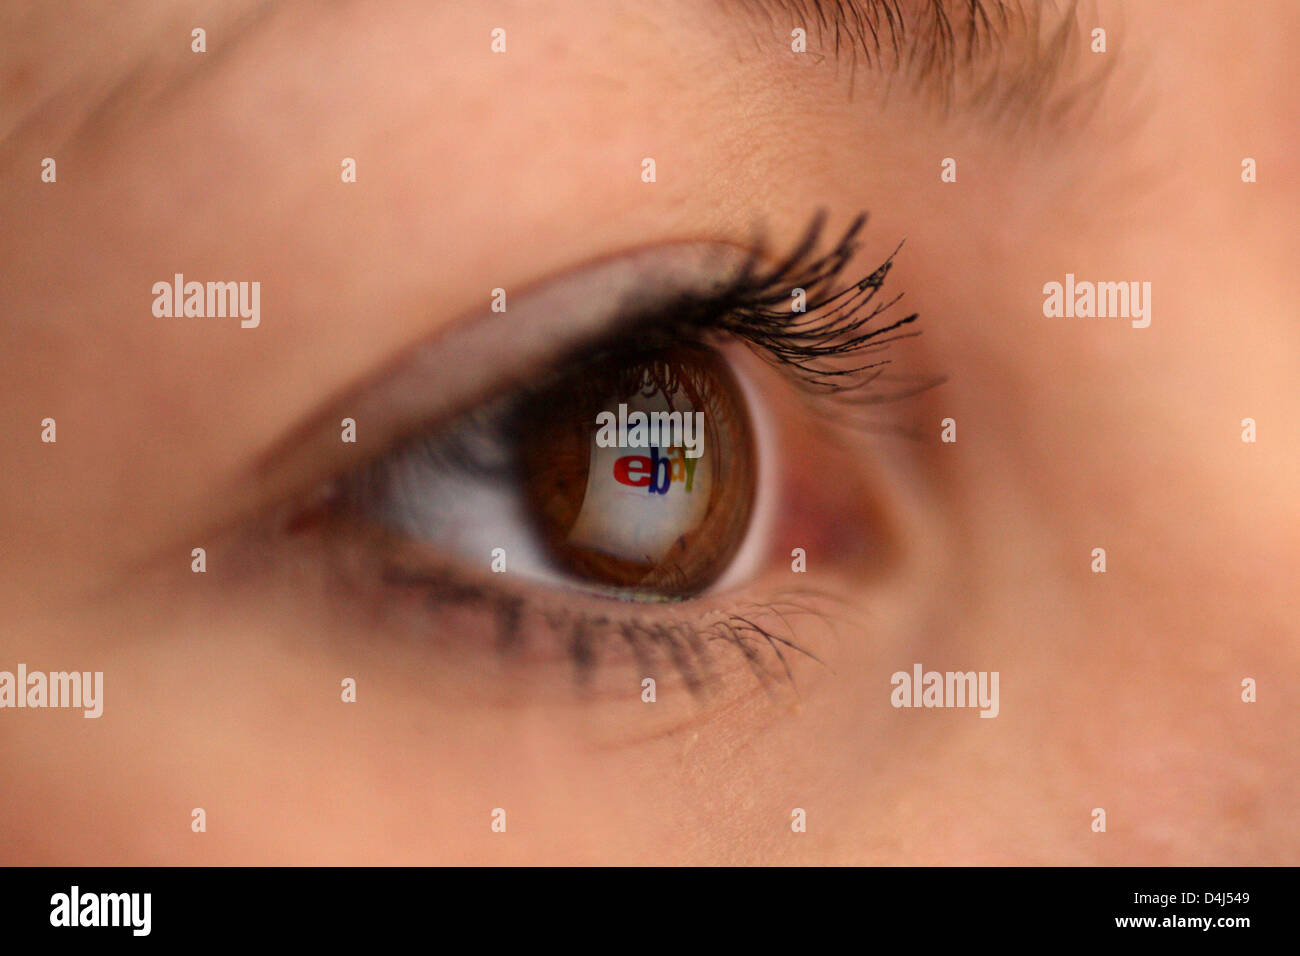 Berlin, Germany, mirroring the Ebay logo at the eye of a woman Stock Photo